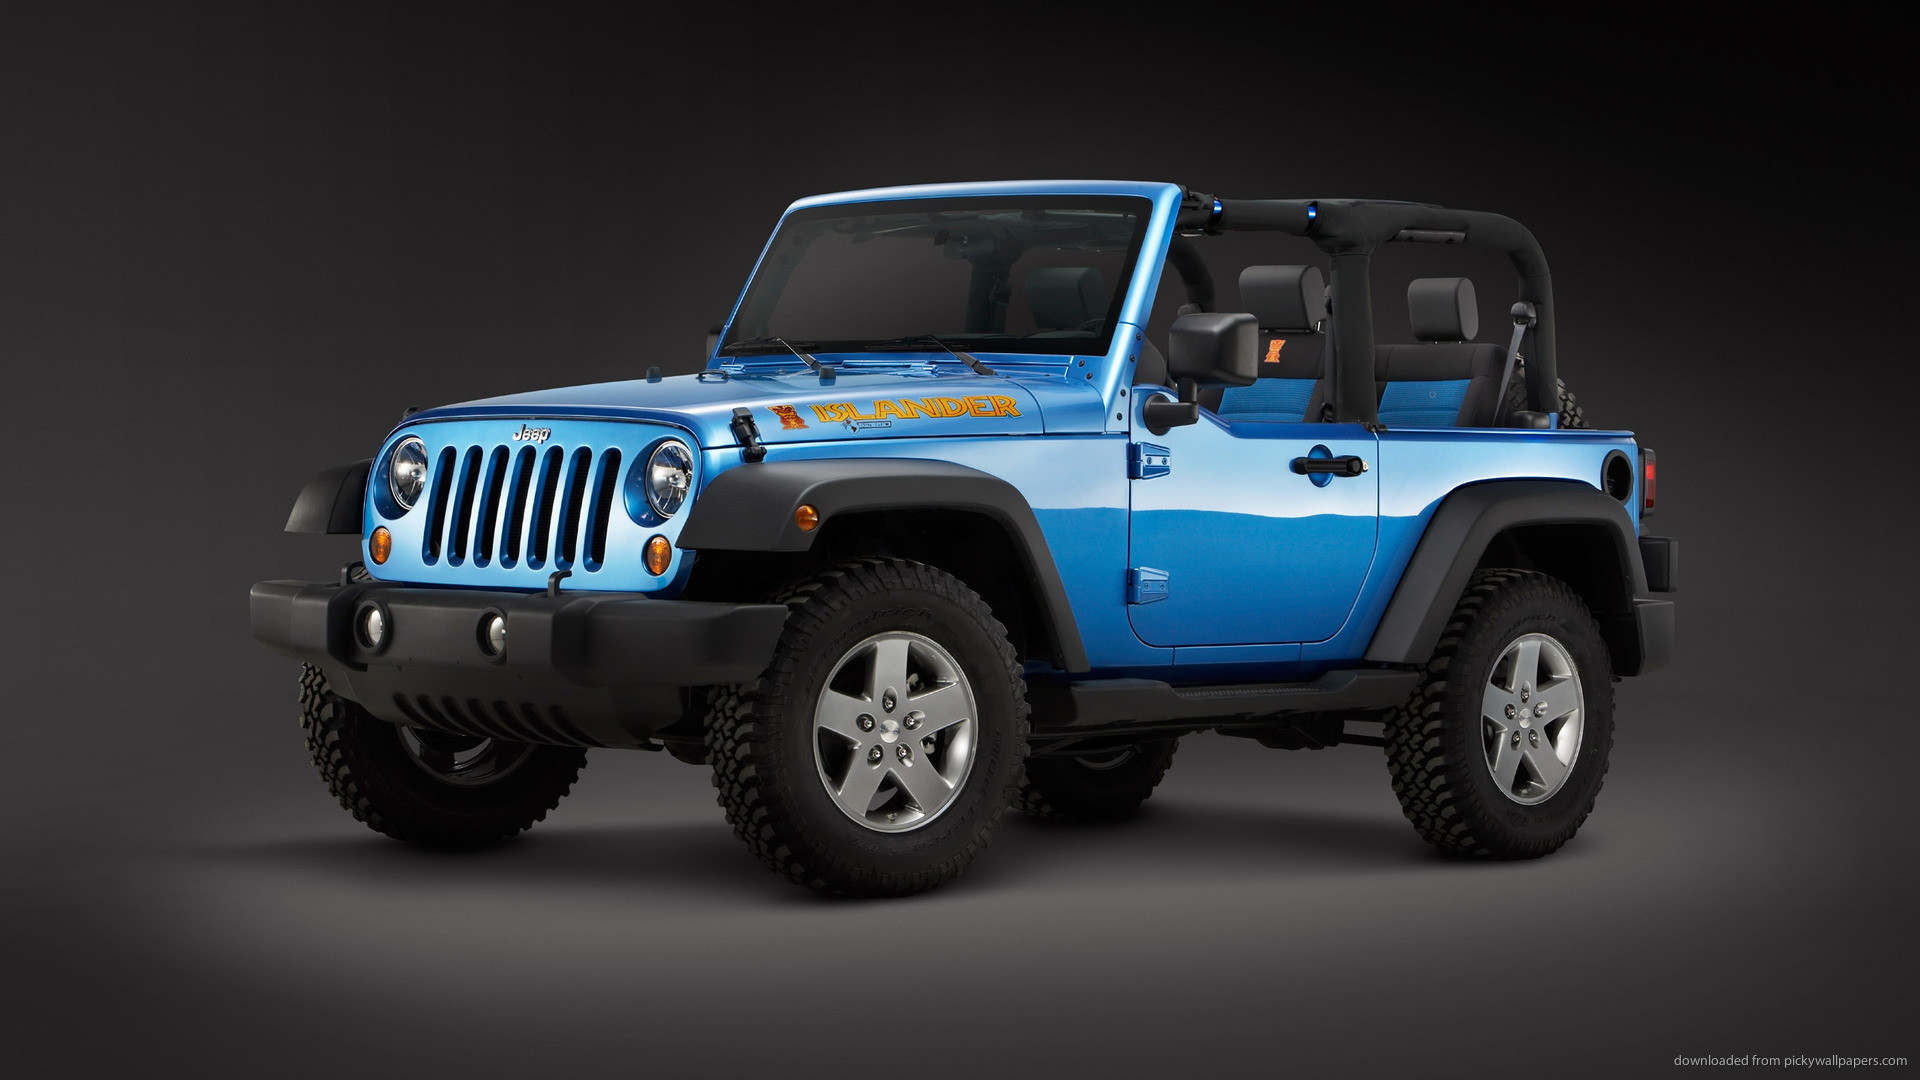 Blue Jeep Wrangler 2010 picture